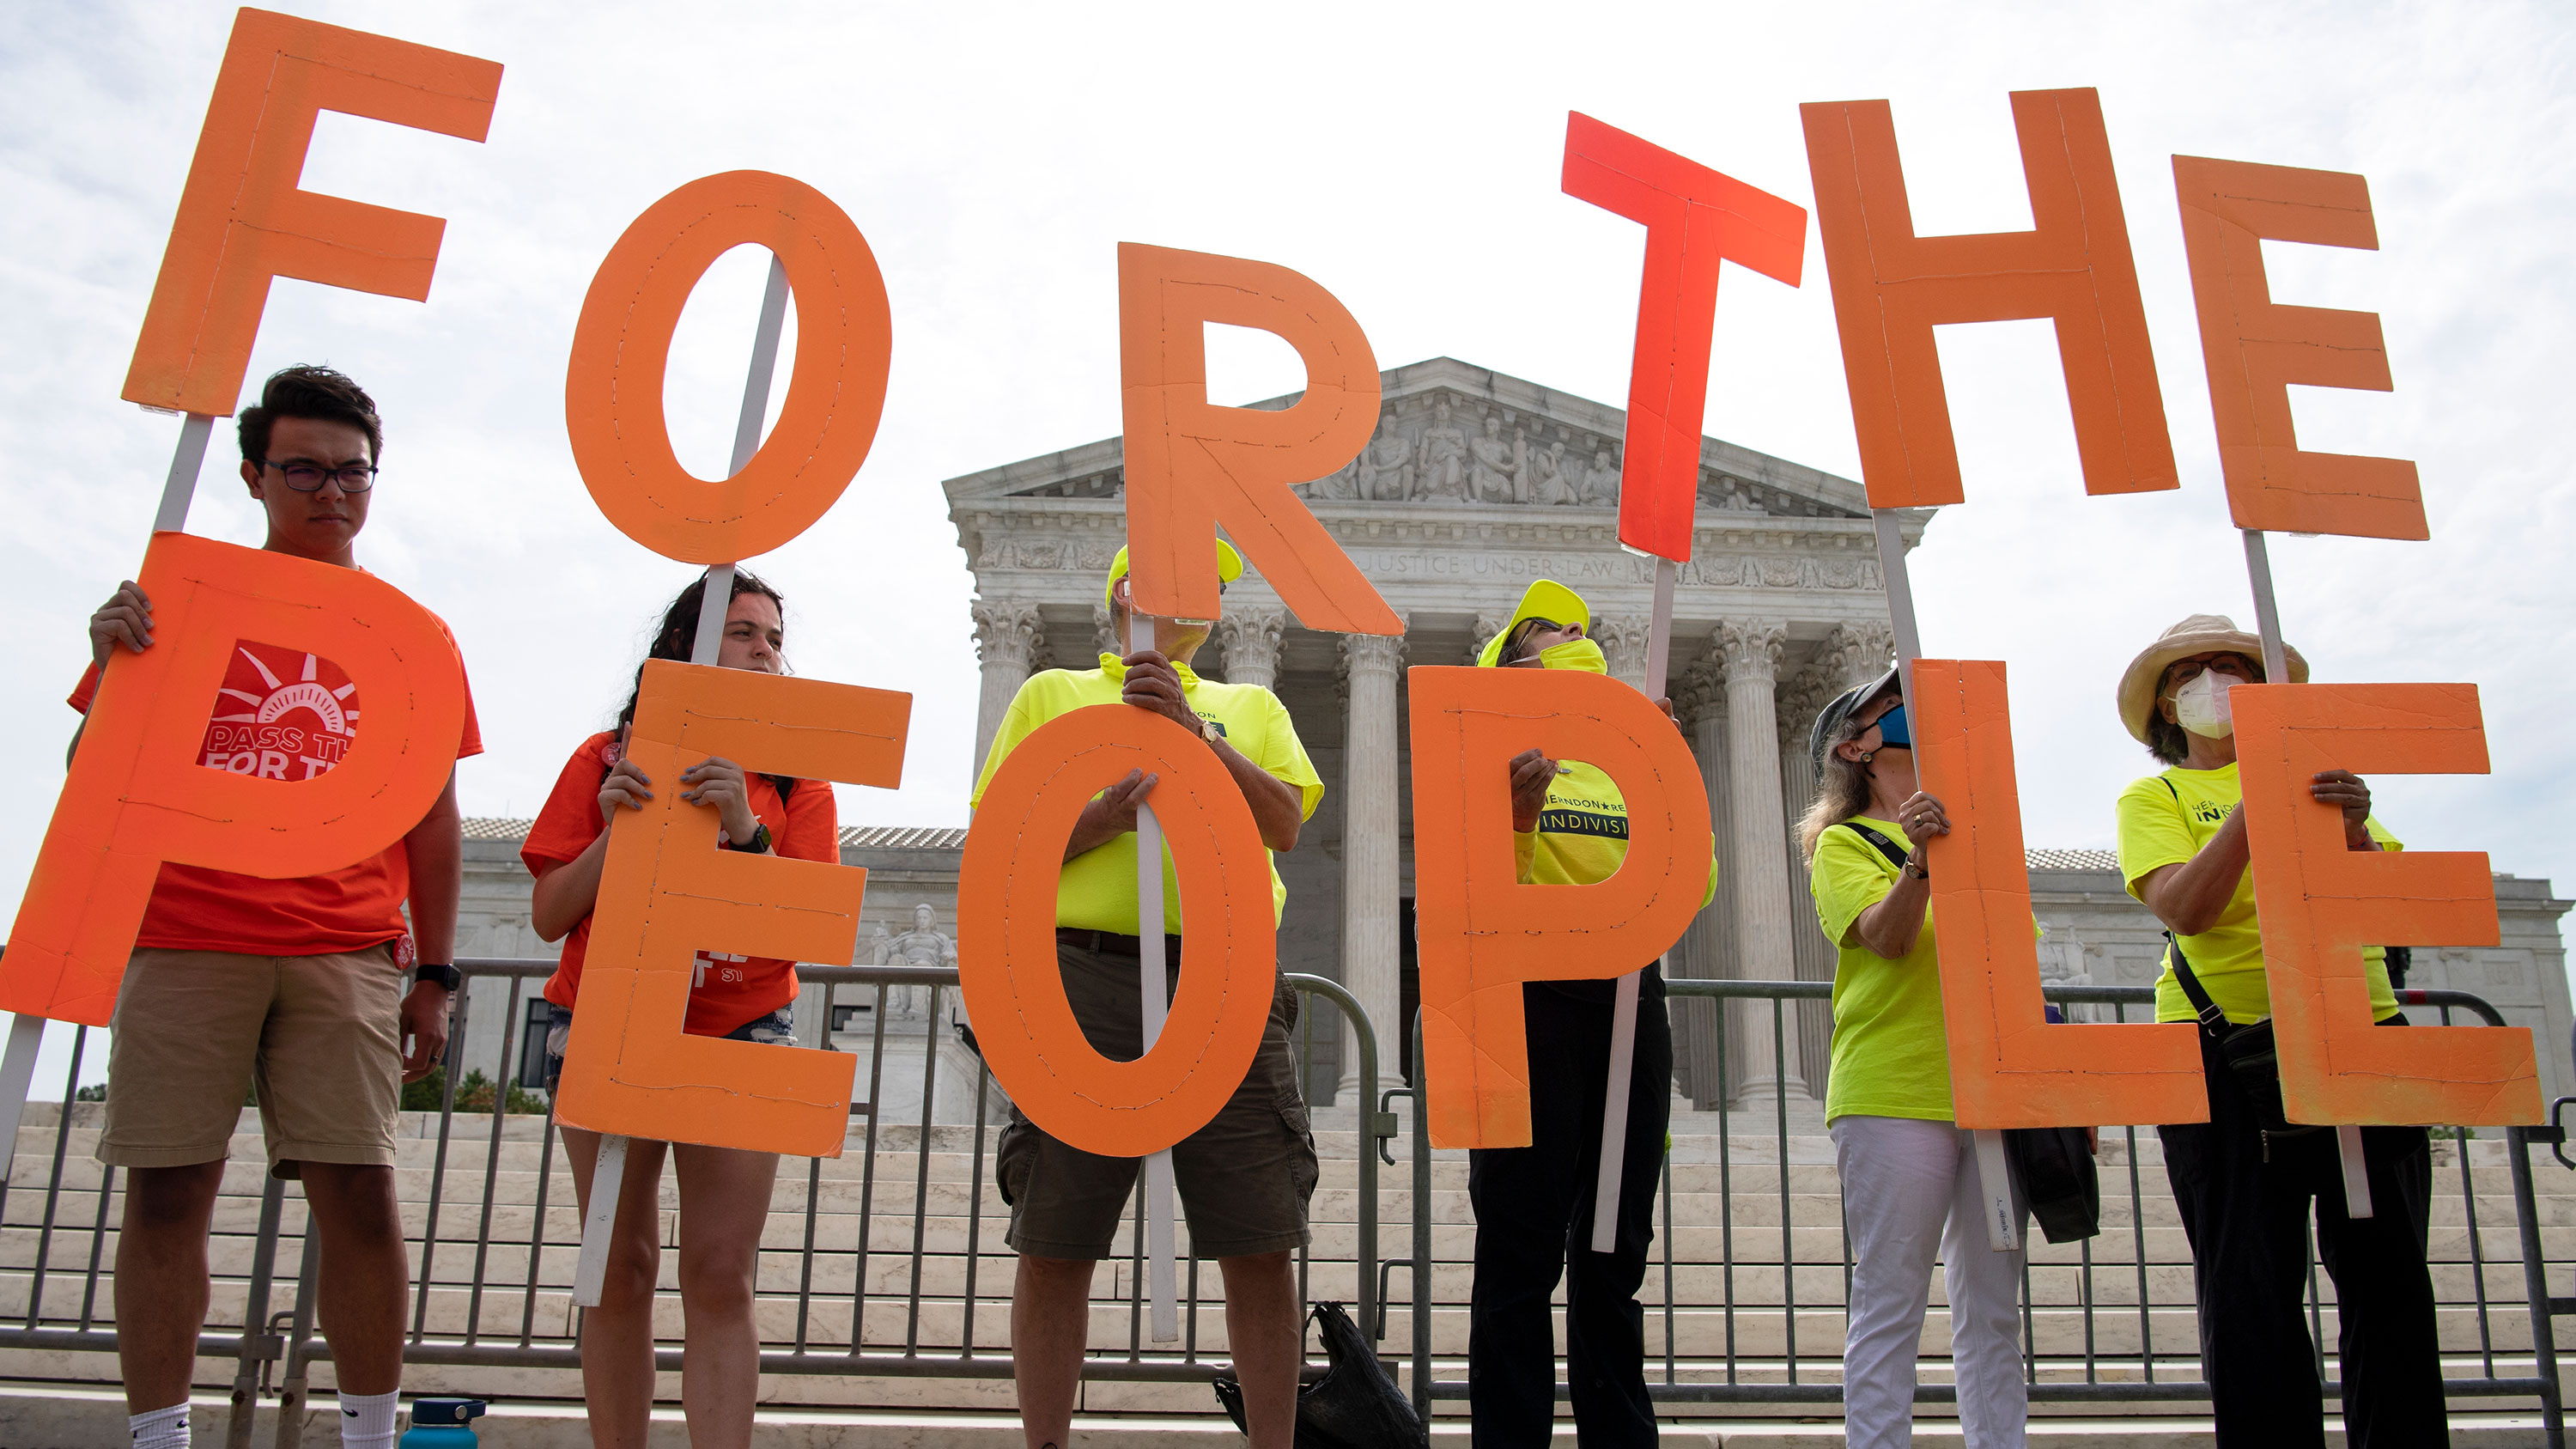 Demonstrators hold up signs as the Declaration for American Democracy coalition hosts a rally calling on the Senate to pass the For the People Act, outside the Supreme Court in Washington on Wednesday, June 9.